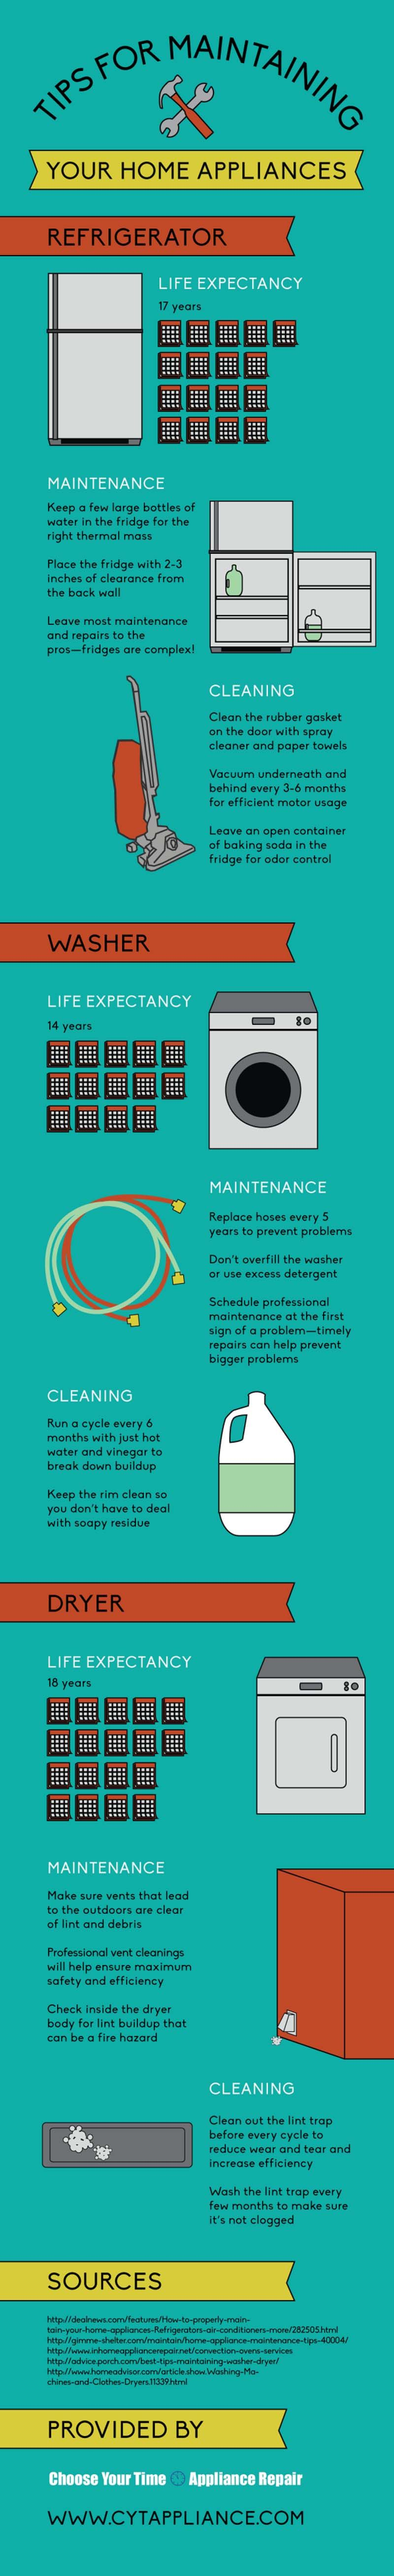 appliance repair tampa infographic